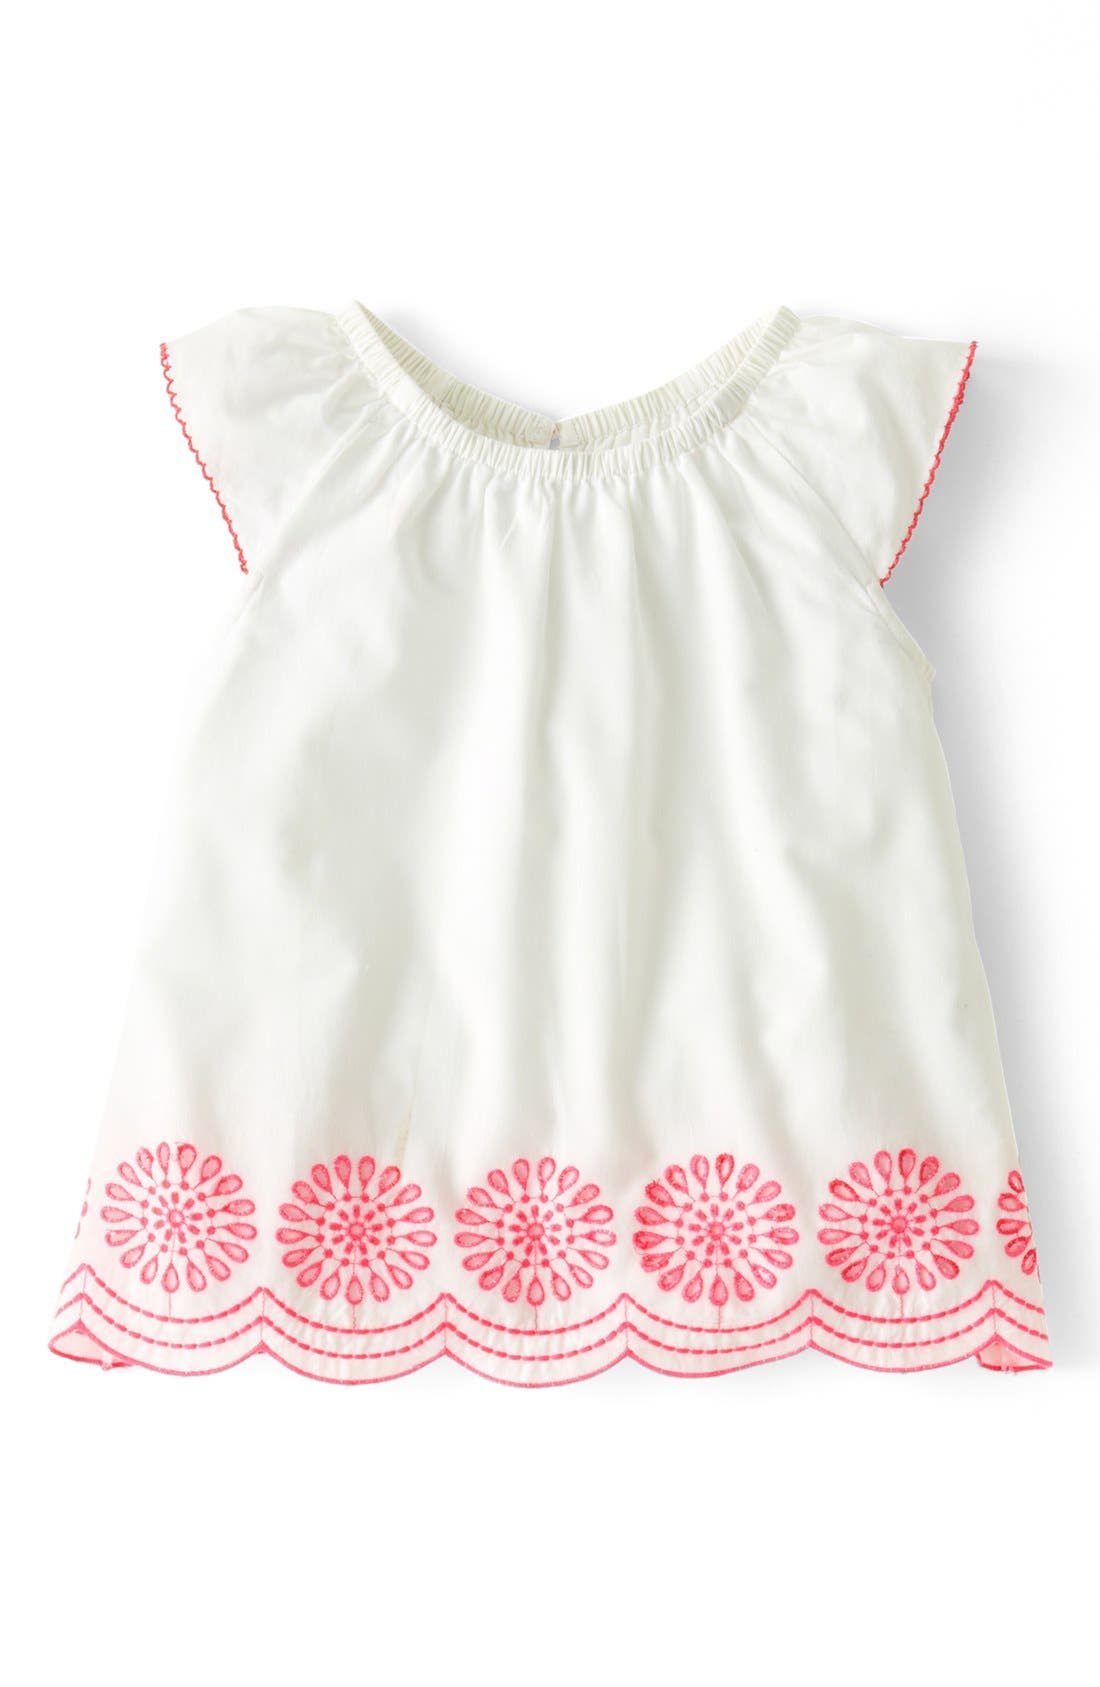 Alternate Image 1 Selected - Mini Boden 'Broderie' Cotton Cambric A-Line Top (Toddler Girls)